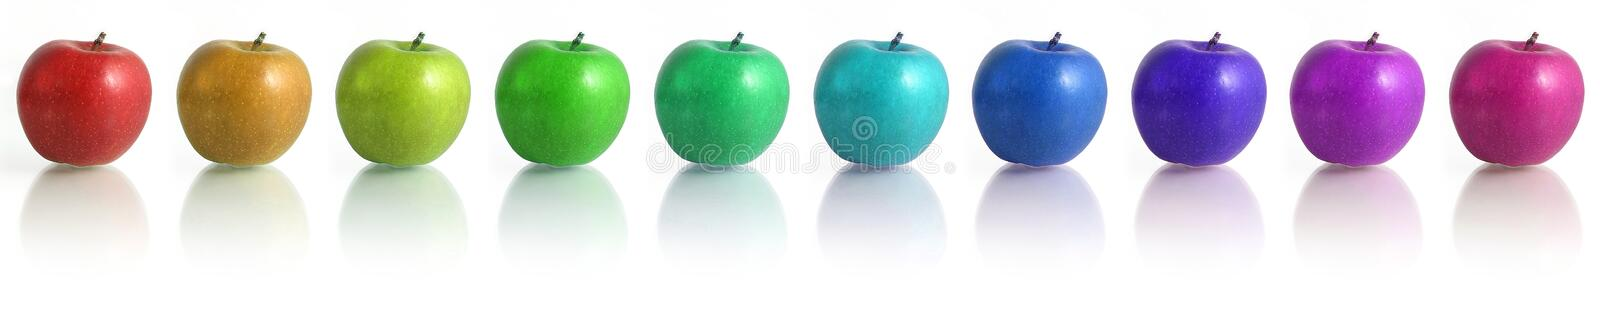 Apples. Spectar royalty free stock photography